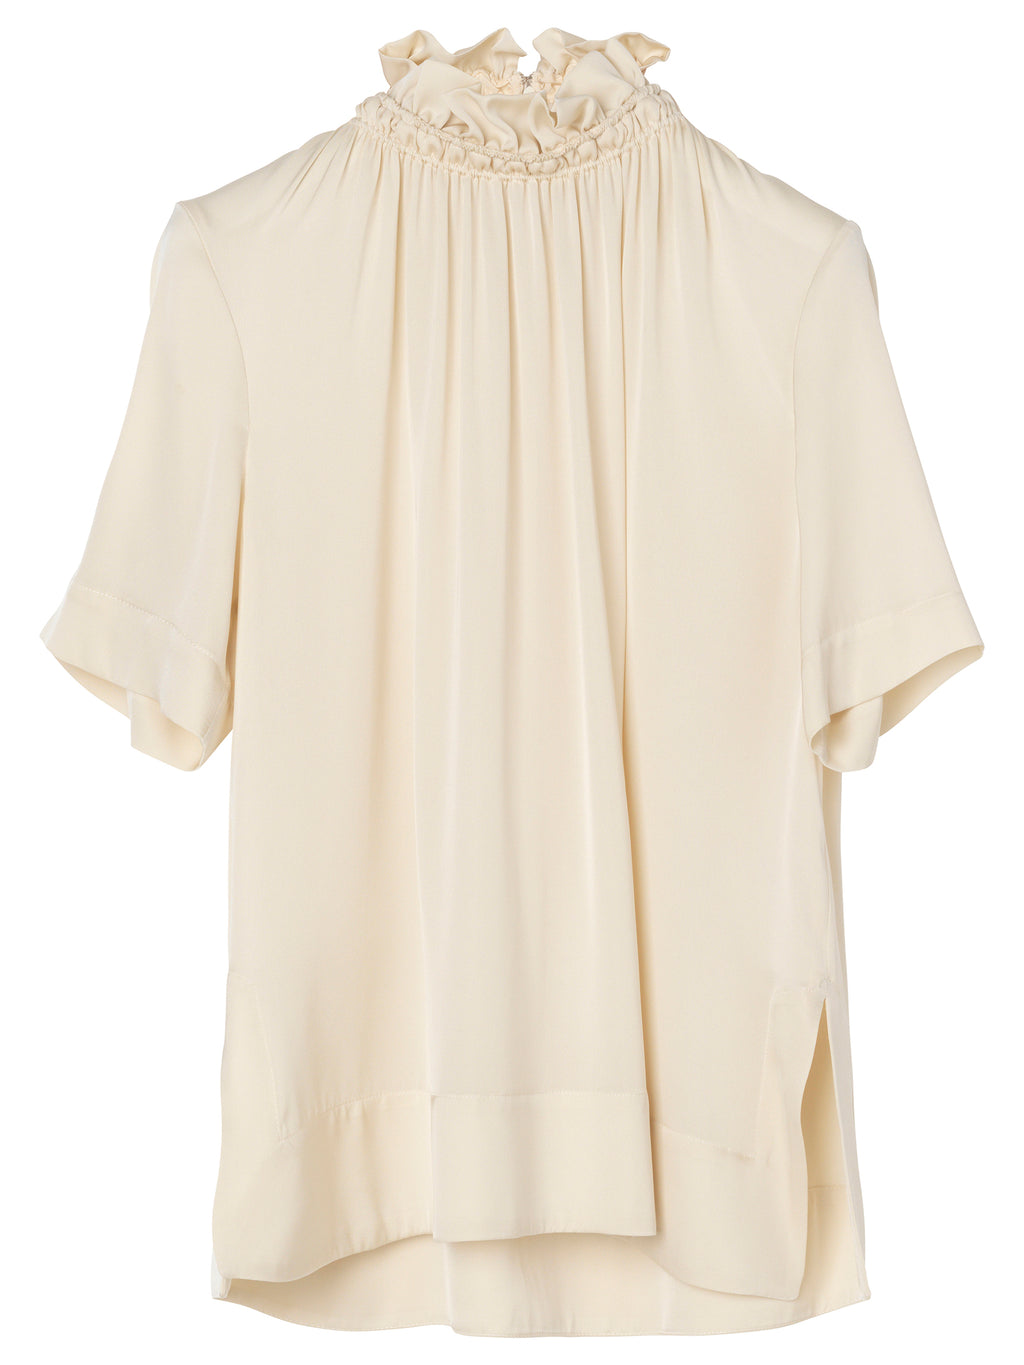 By Malene Birger Fraction bluse offwhite med flæsekrave